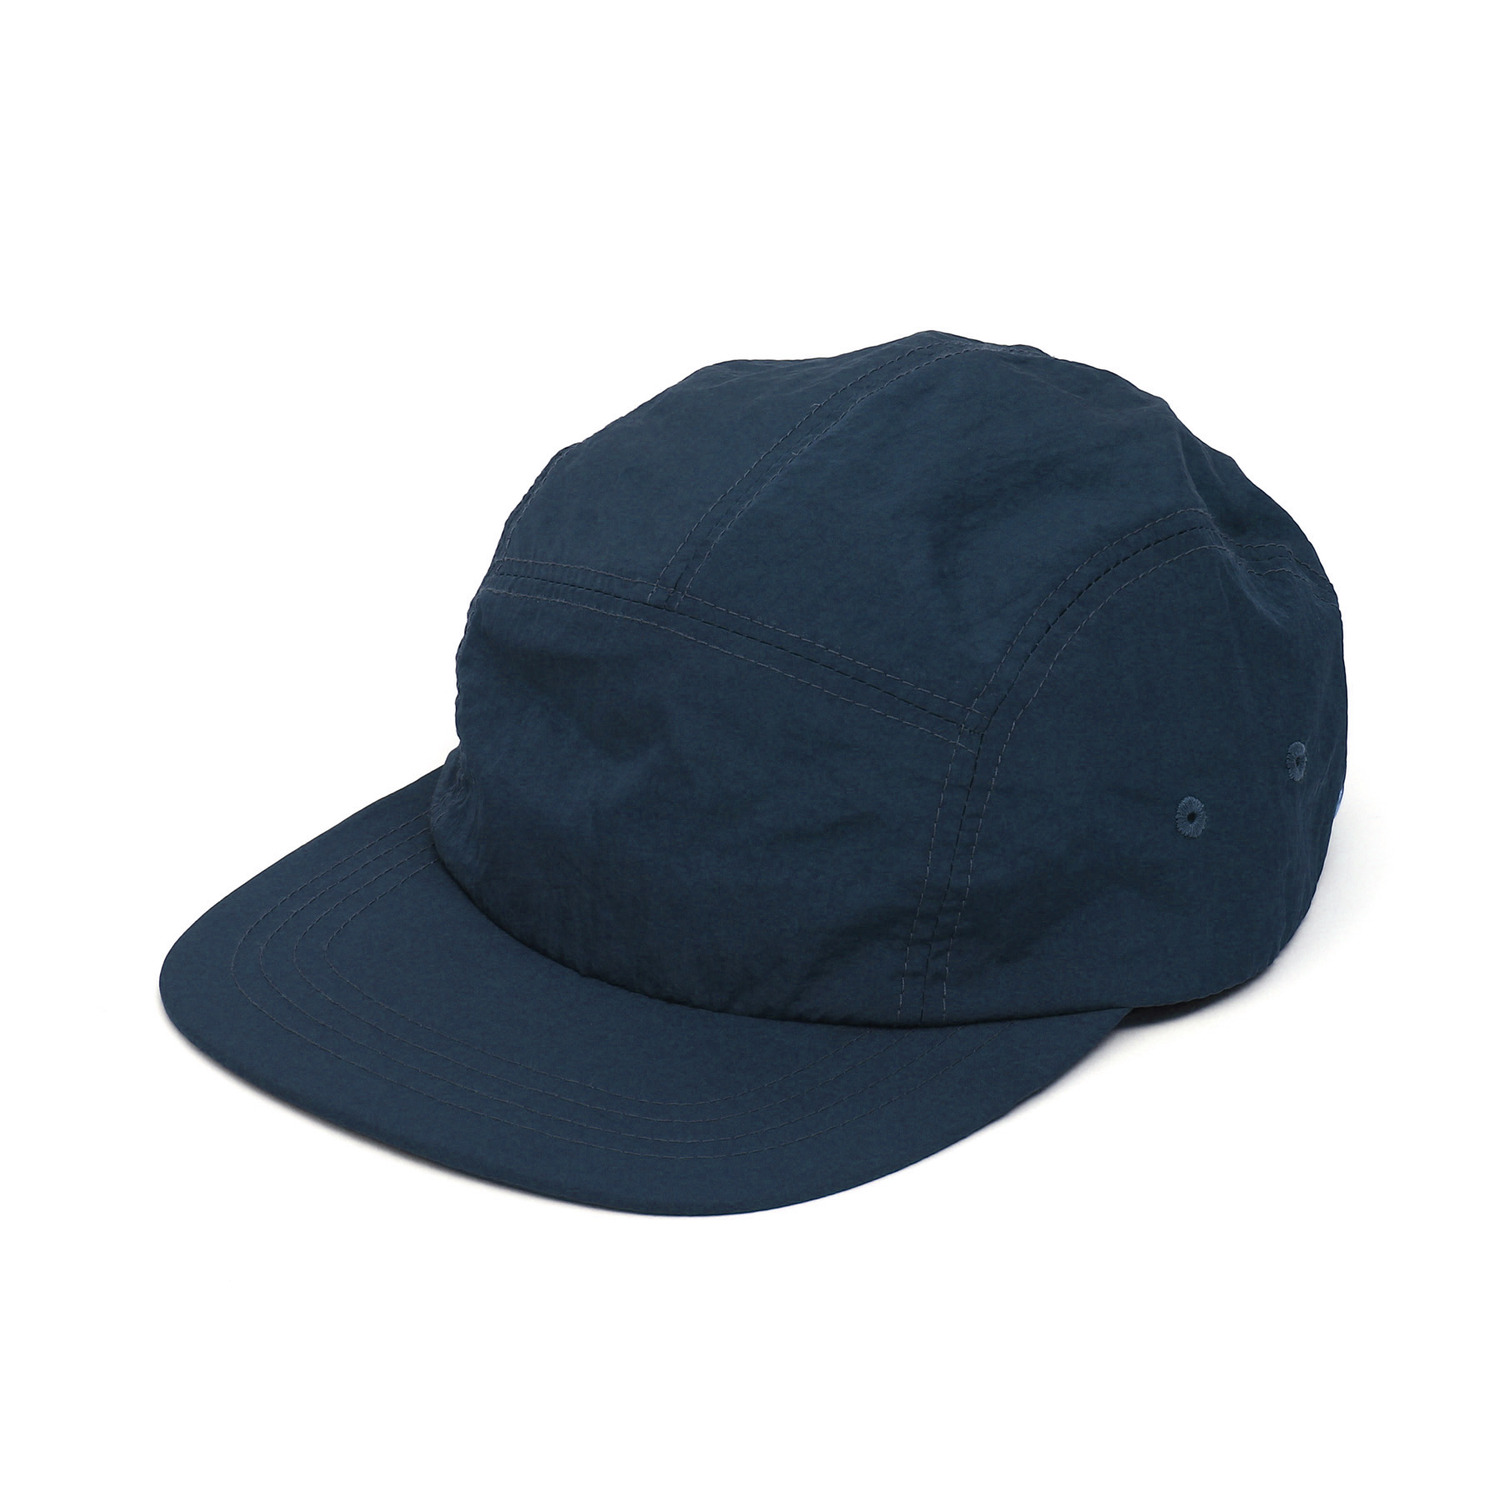 JET CAP / CRUSHED NYLON / NAVY